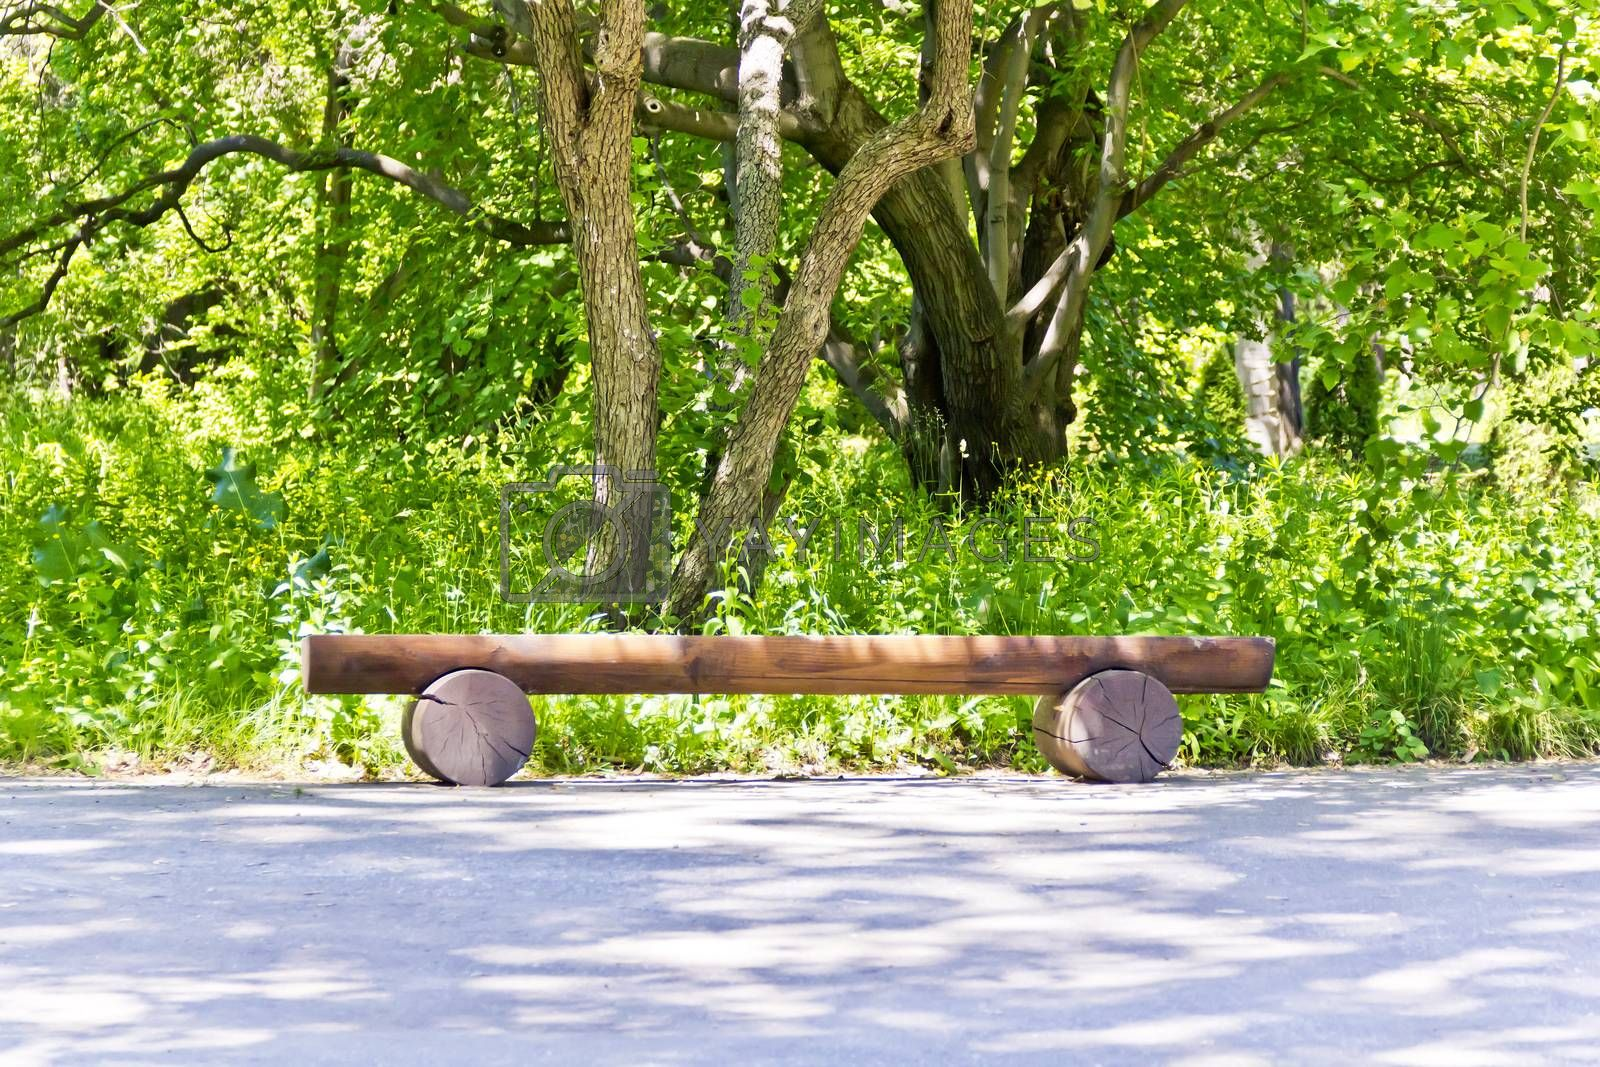 Scenery with empty bench in summer green park